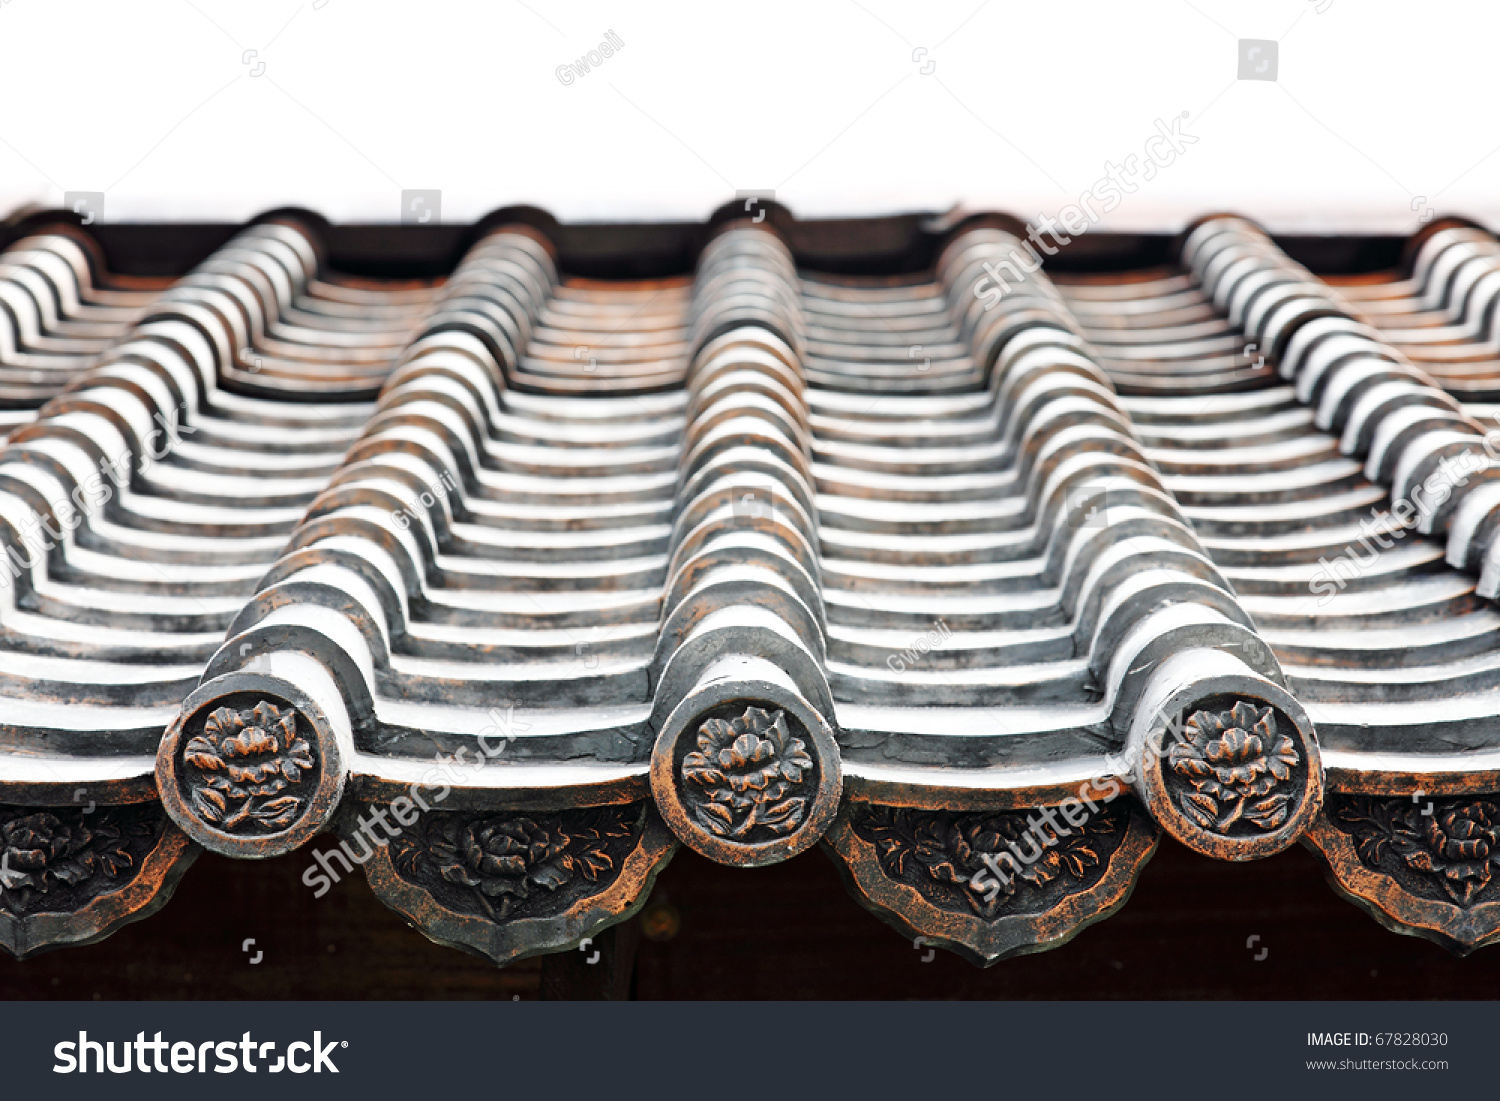 Close Image Ancient Medieval Roof Oriental Stock Photo 67828030 ...